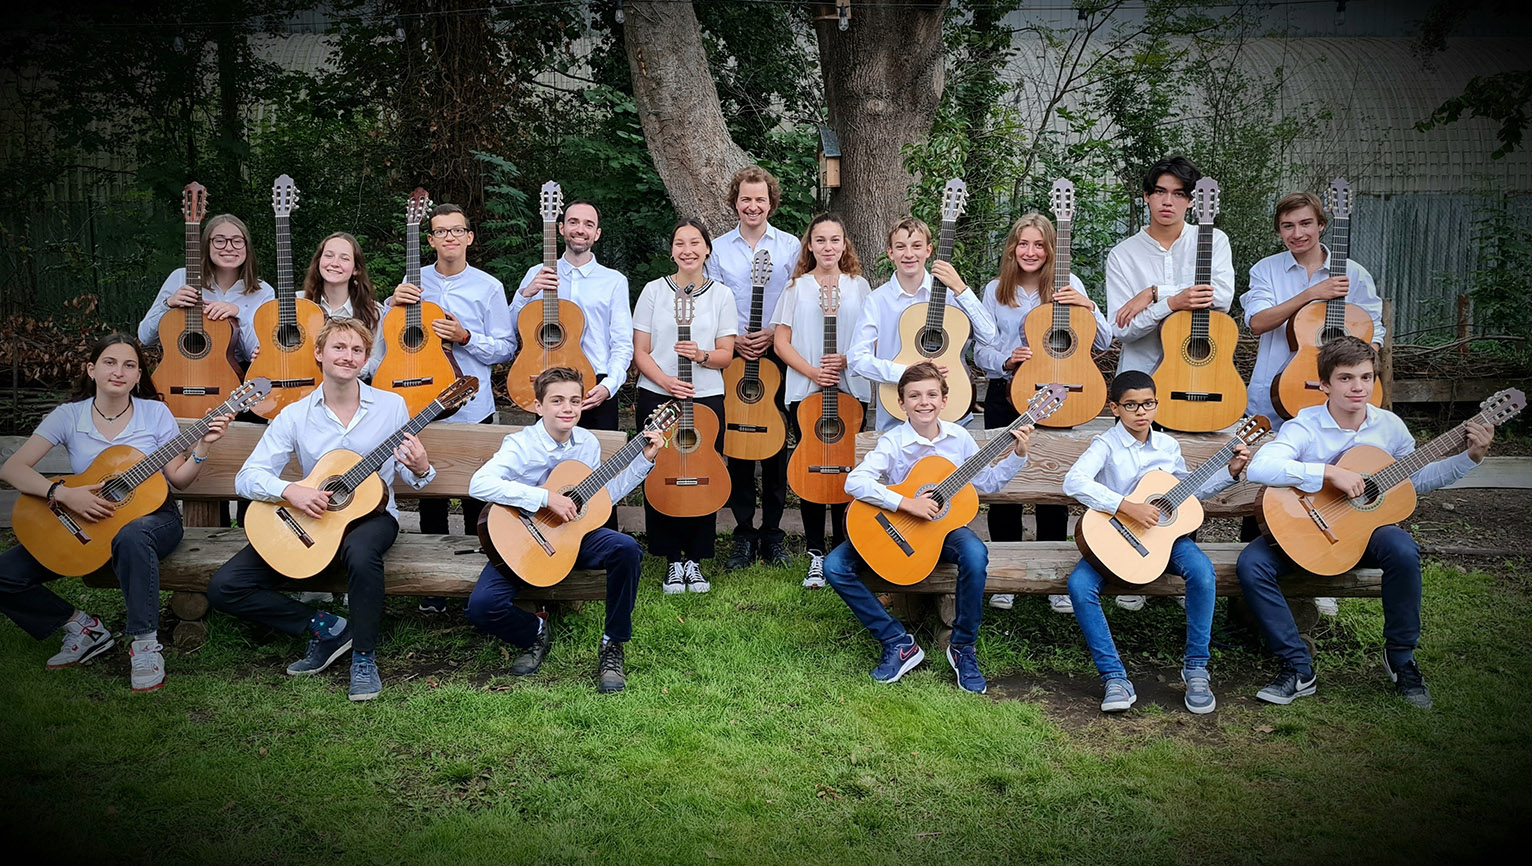 Ensemble de Guitares de l'Académie d'Uccle